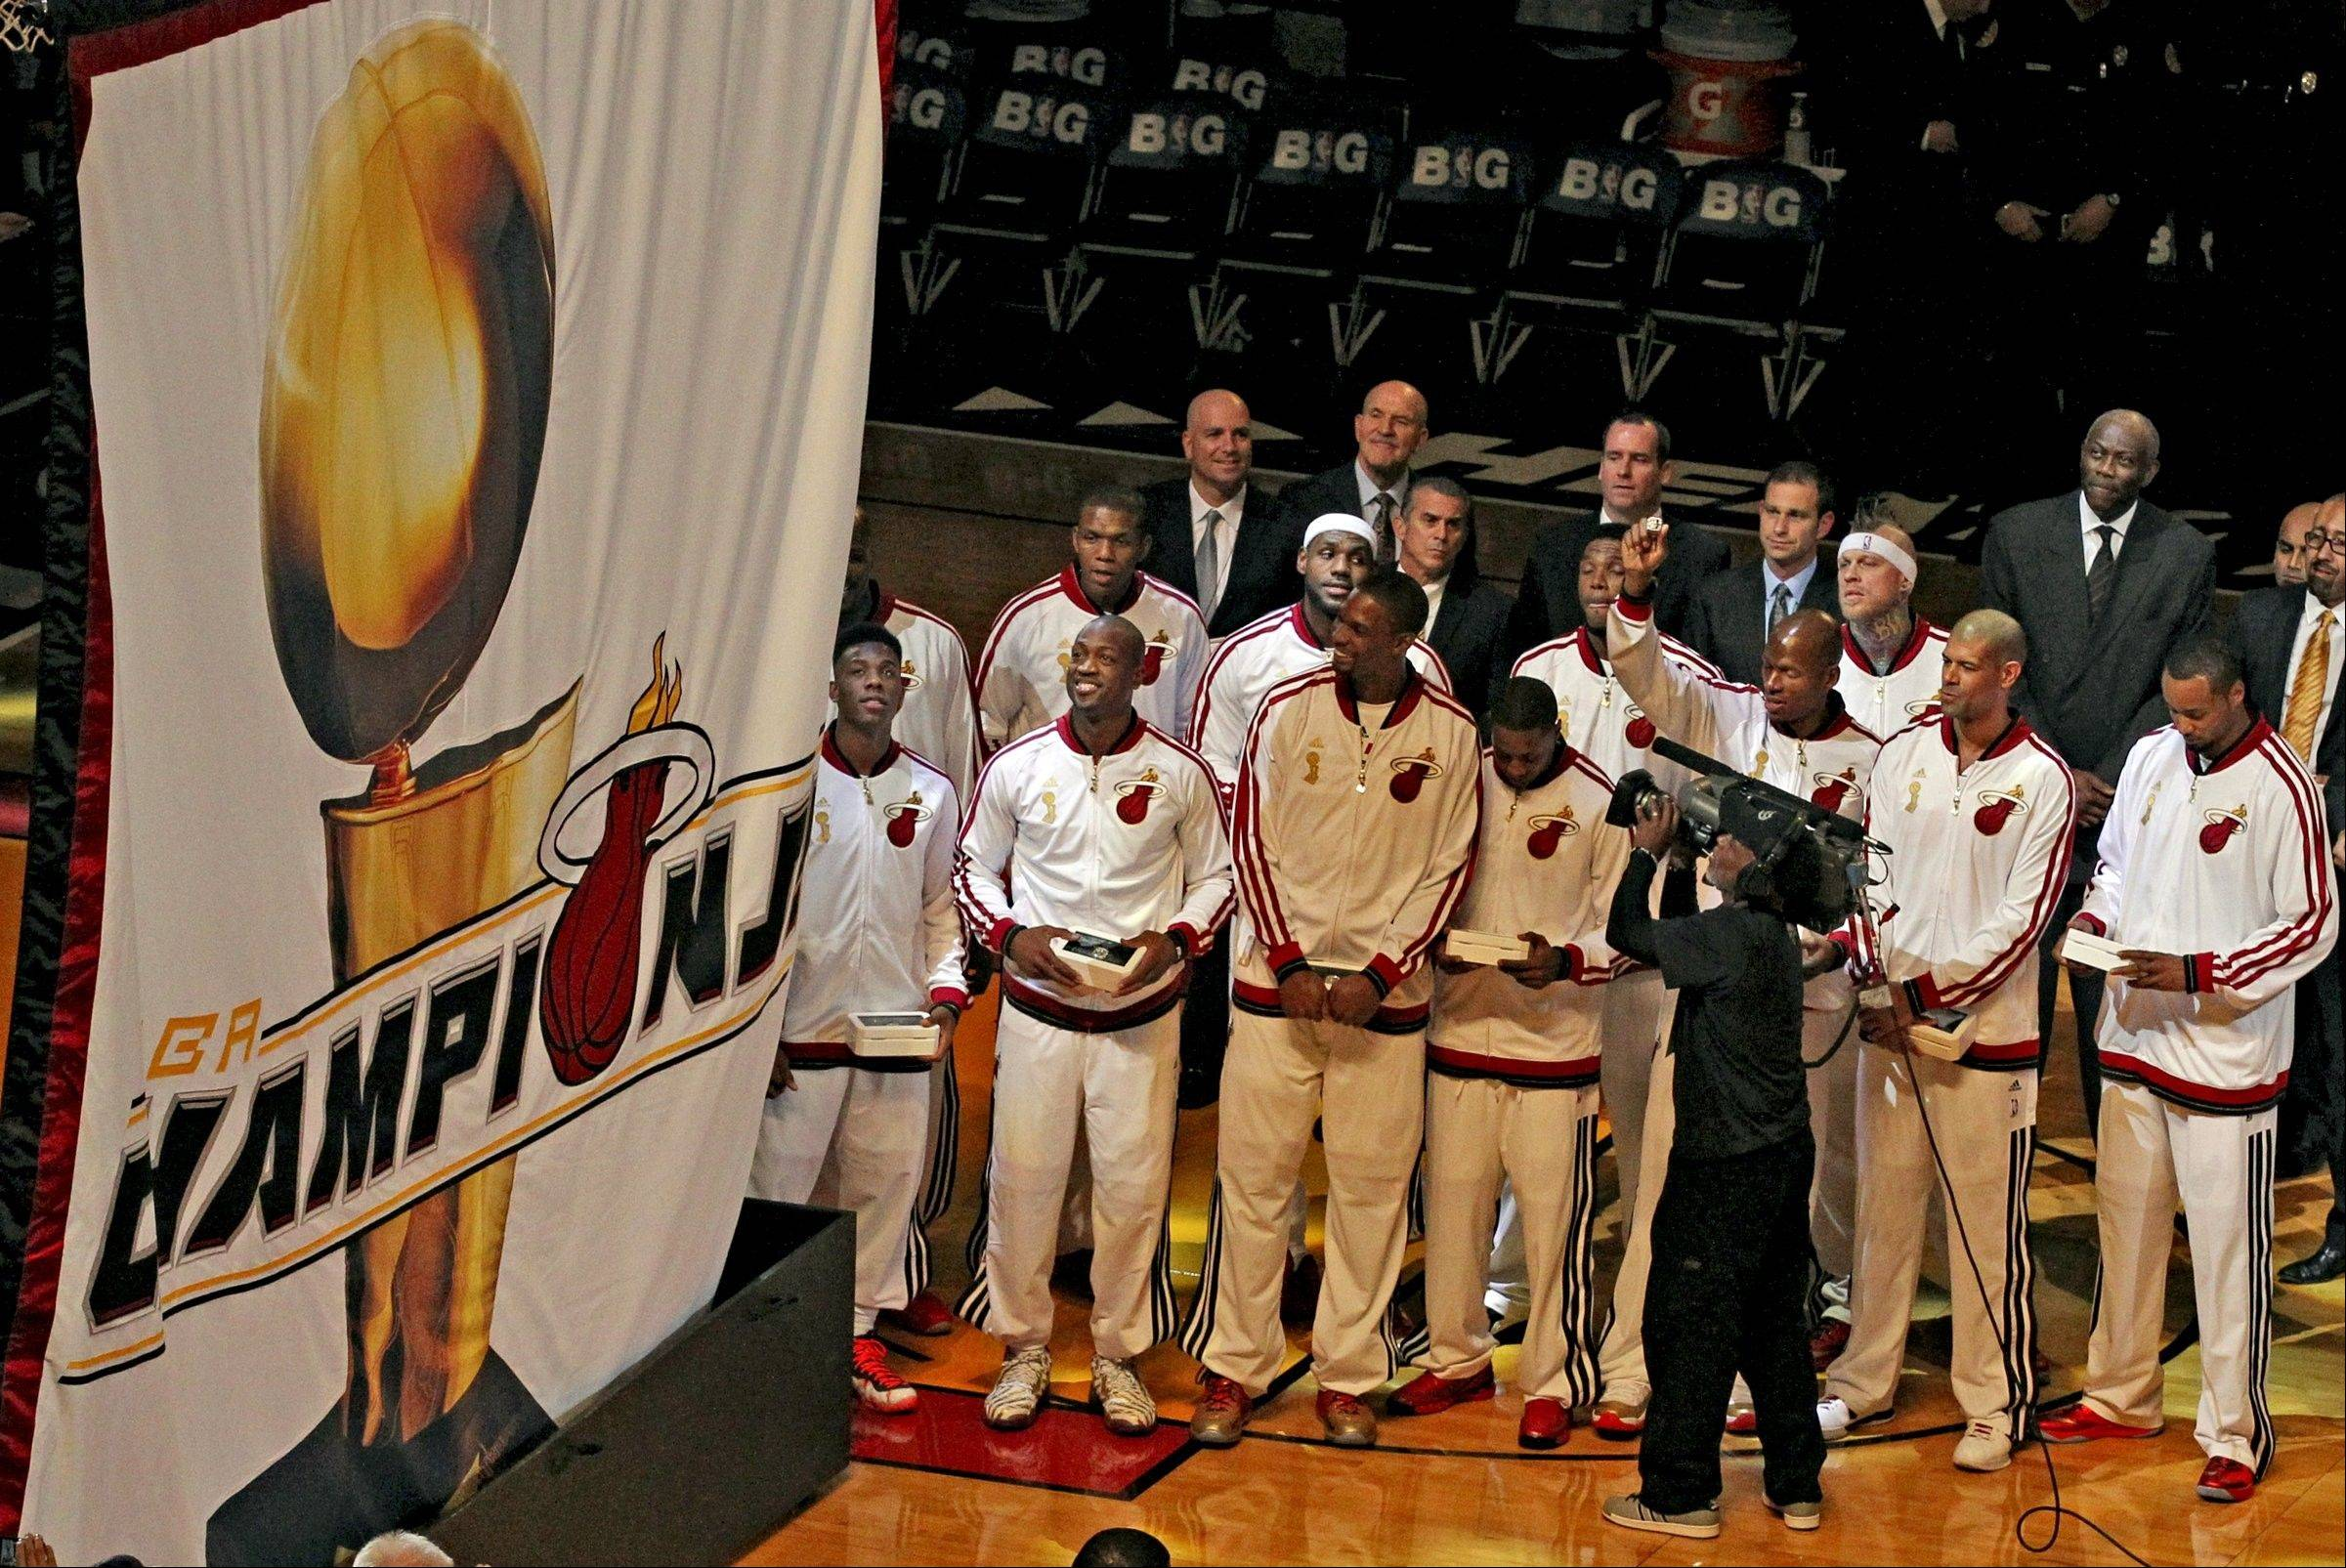 Miami Heat players and coaches watch as the 2013 NBA championship banner is raised before the Heat's season-opener basketball game against the Chicago Bulls on Tuesday, Oct. 29, 2013, in Miami.